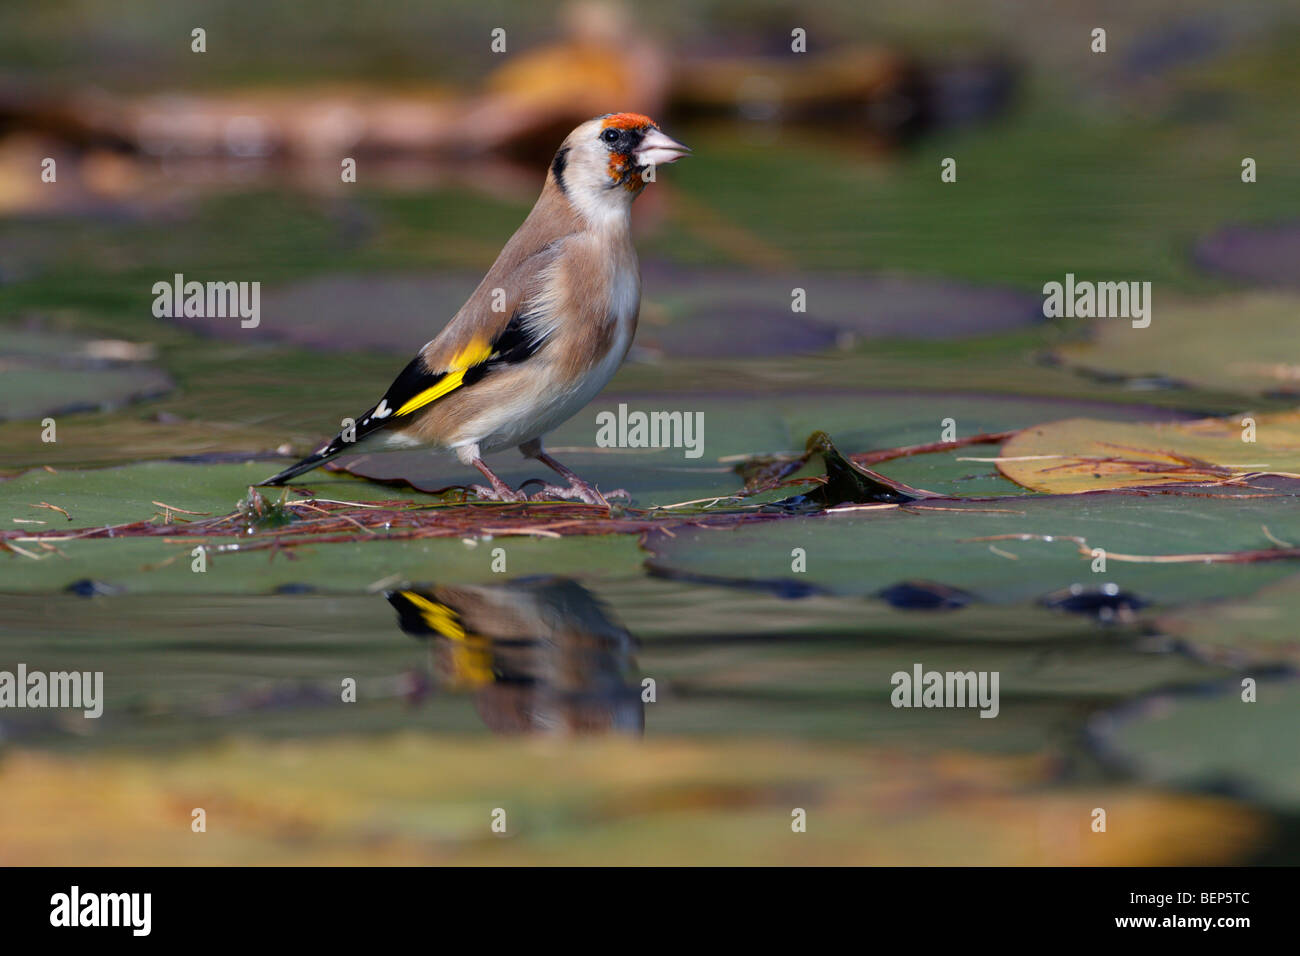 Goldfinch Carduelis carduelis lilly pad - Stock Image